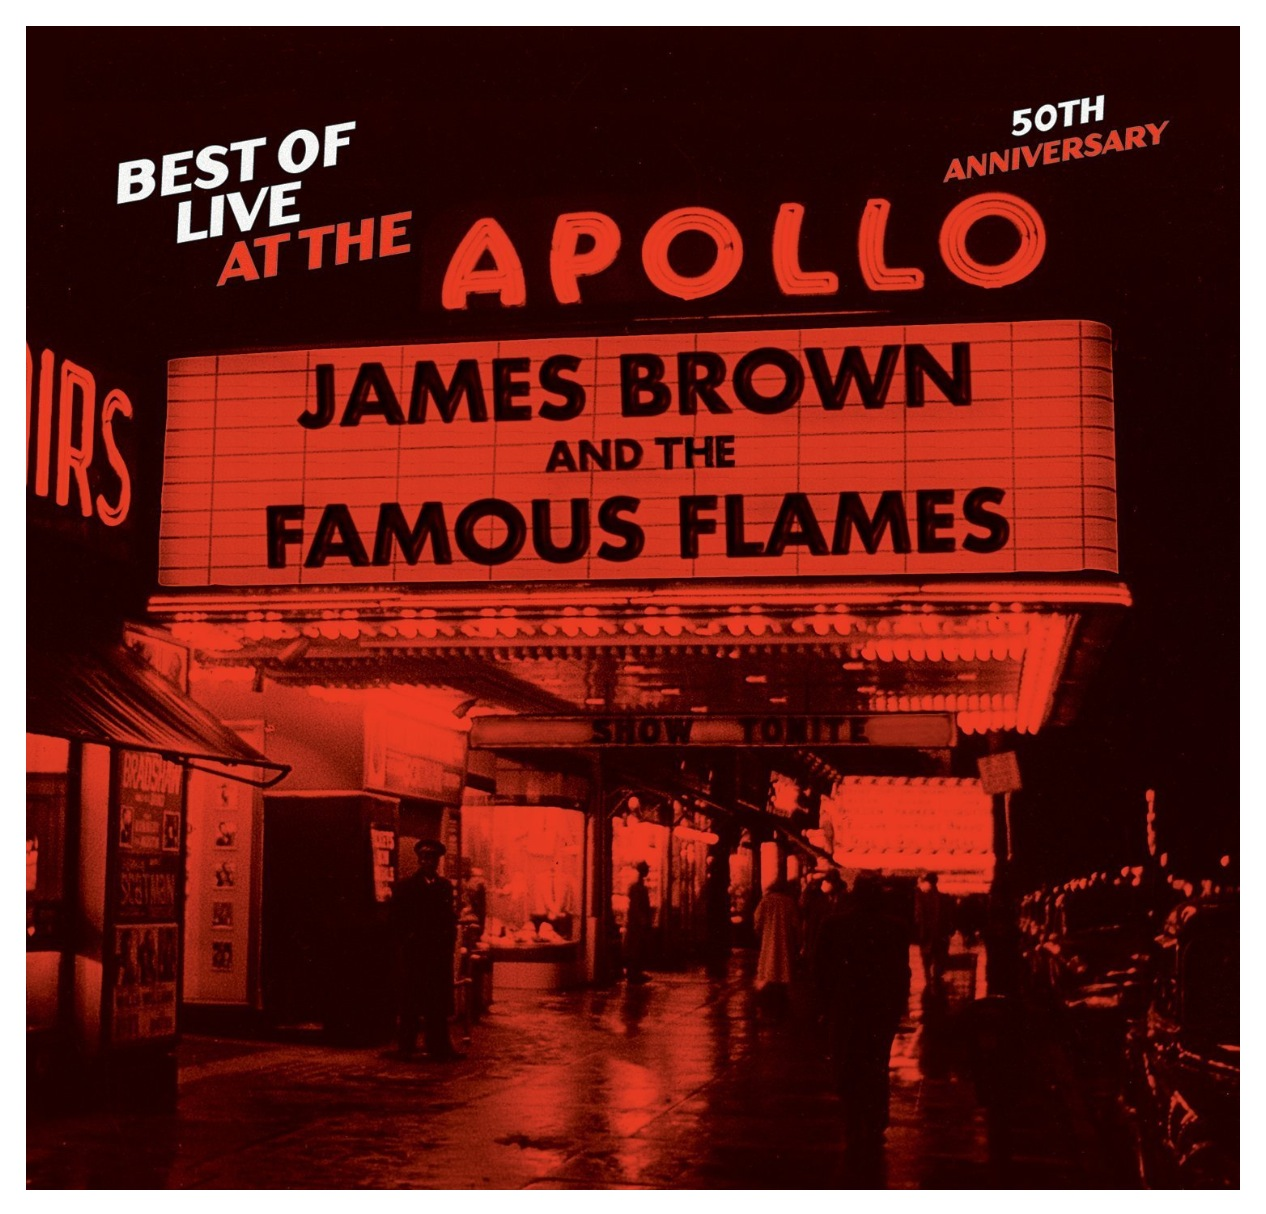 James-Brown-Best-Of-Live-At-The-Apollo_50th-anniversary-edition-cover